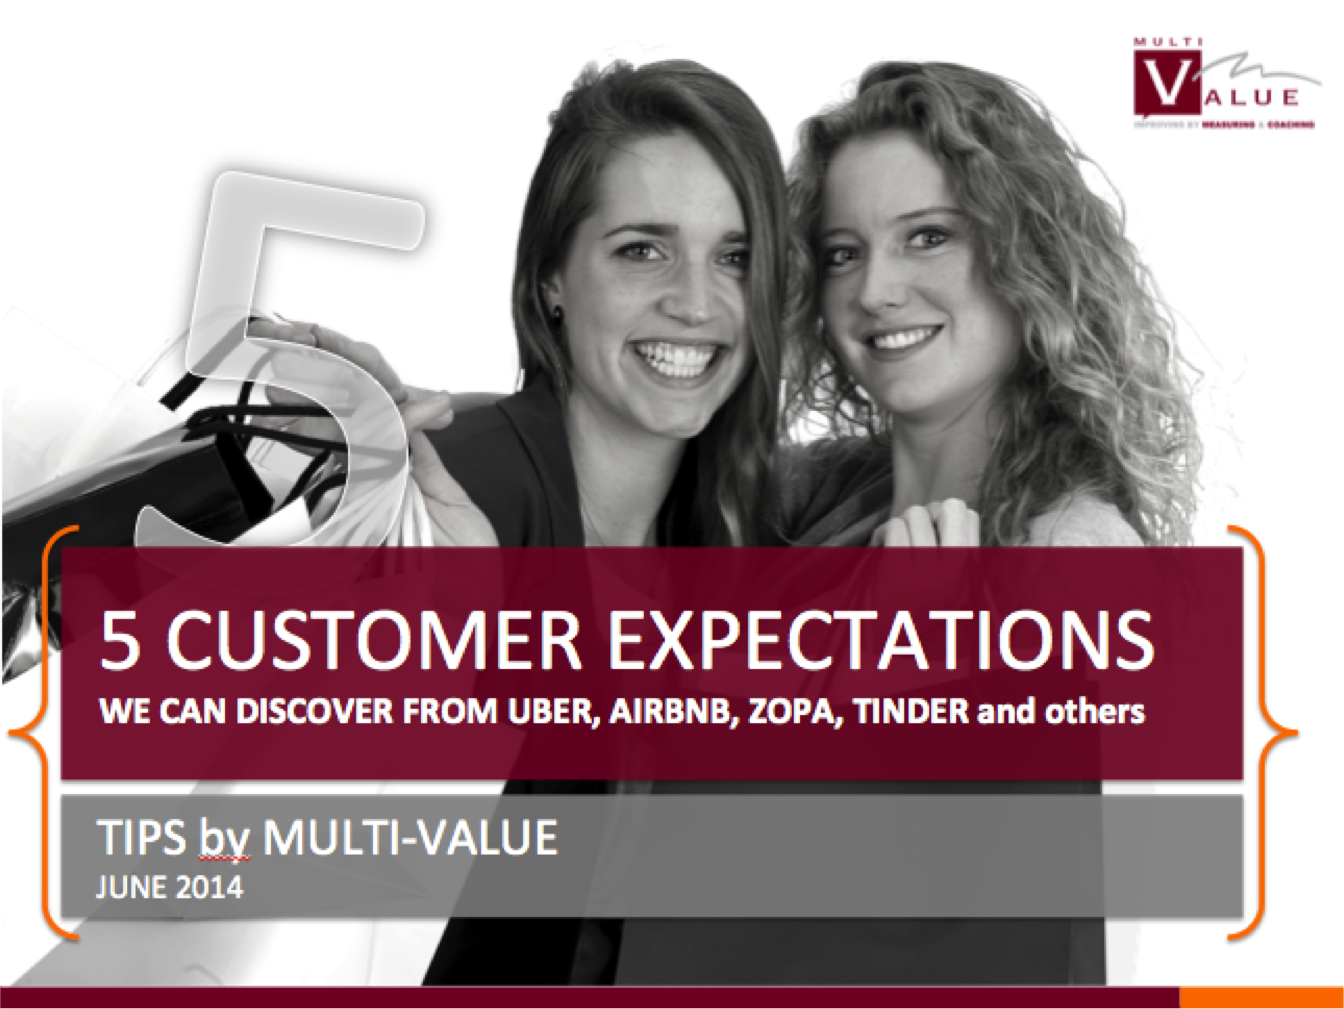 5 Customer Expectations that we can discover from  UBER, AIR BNB, ZOPA, TINDER and others.